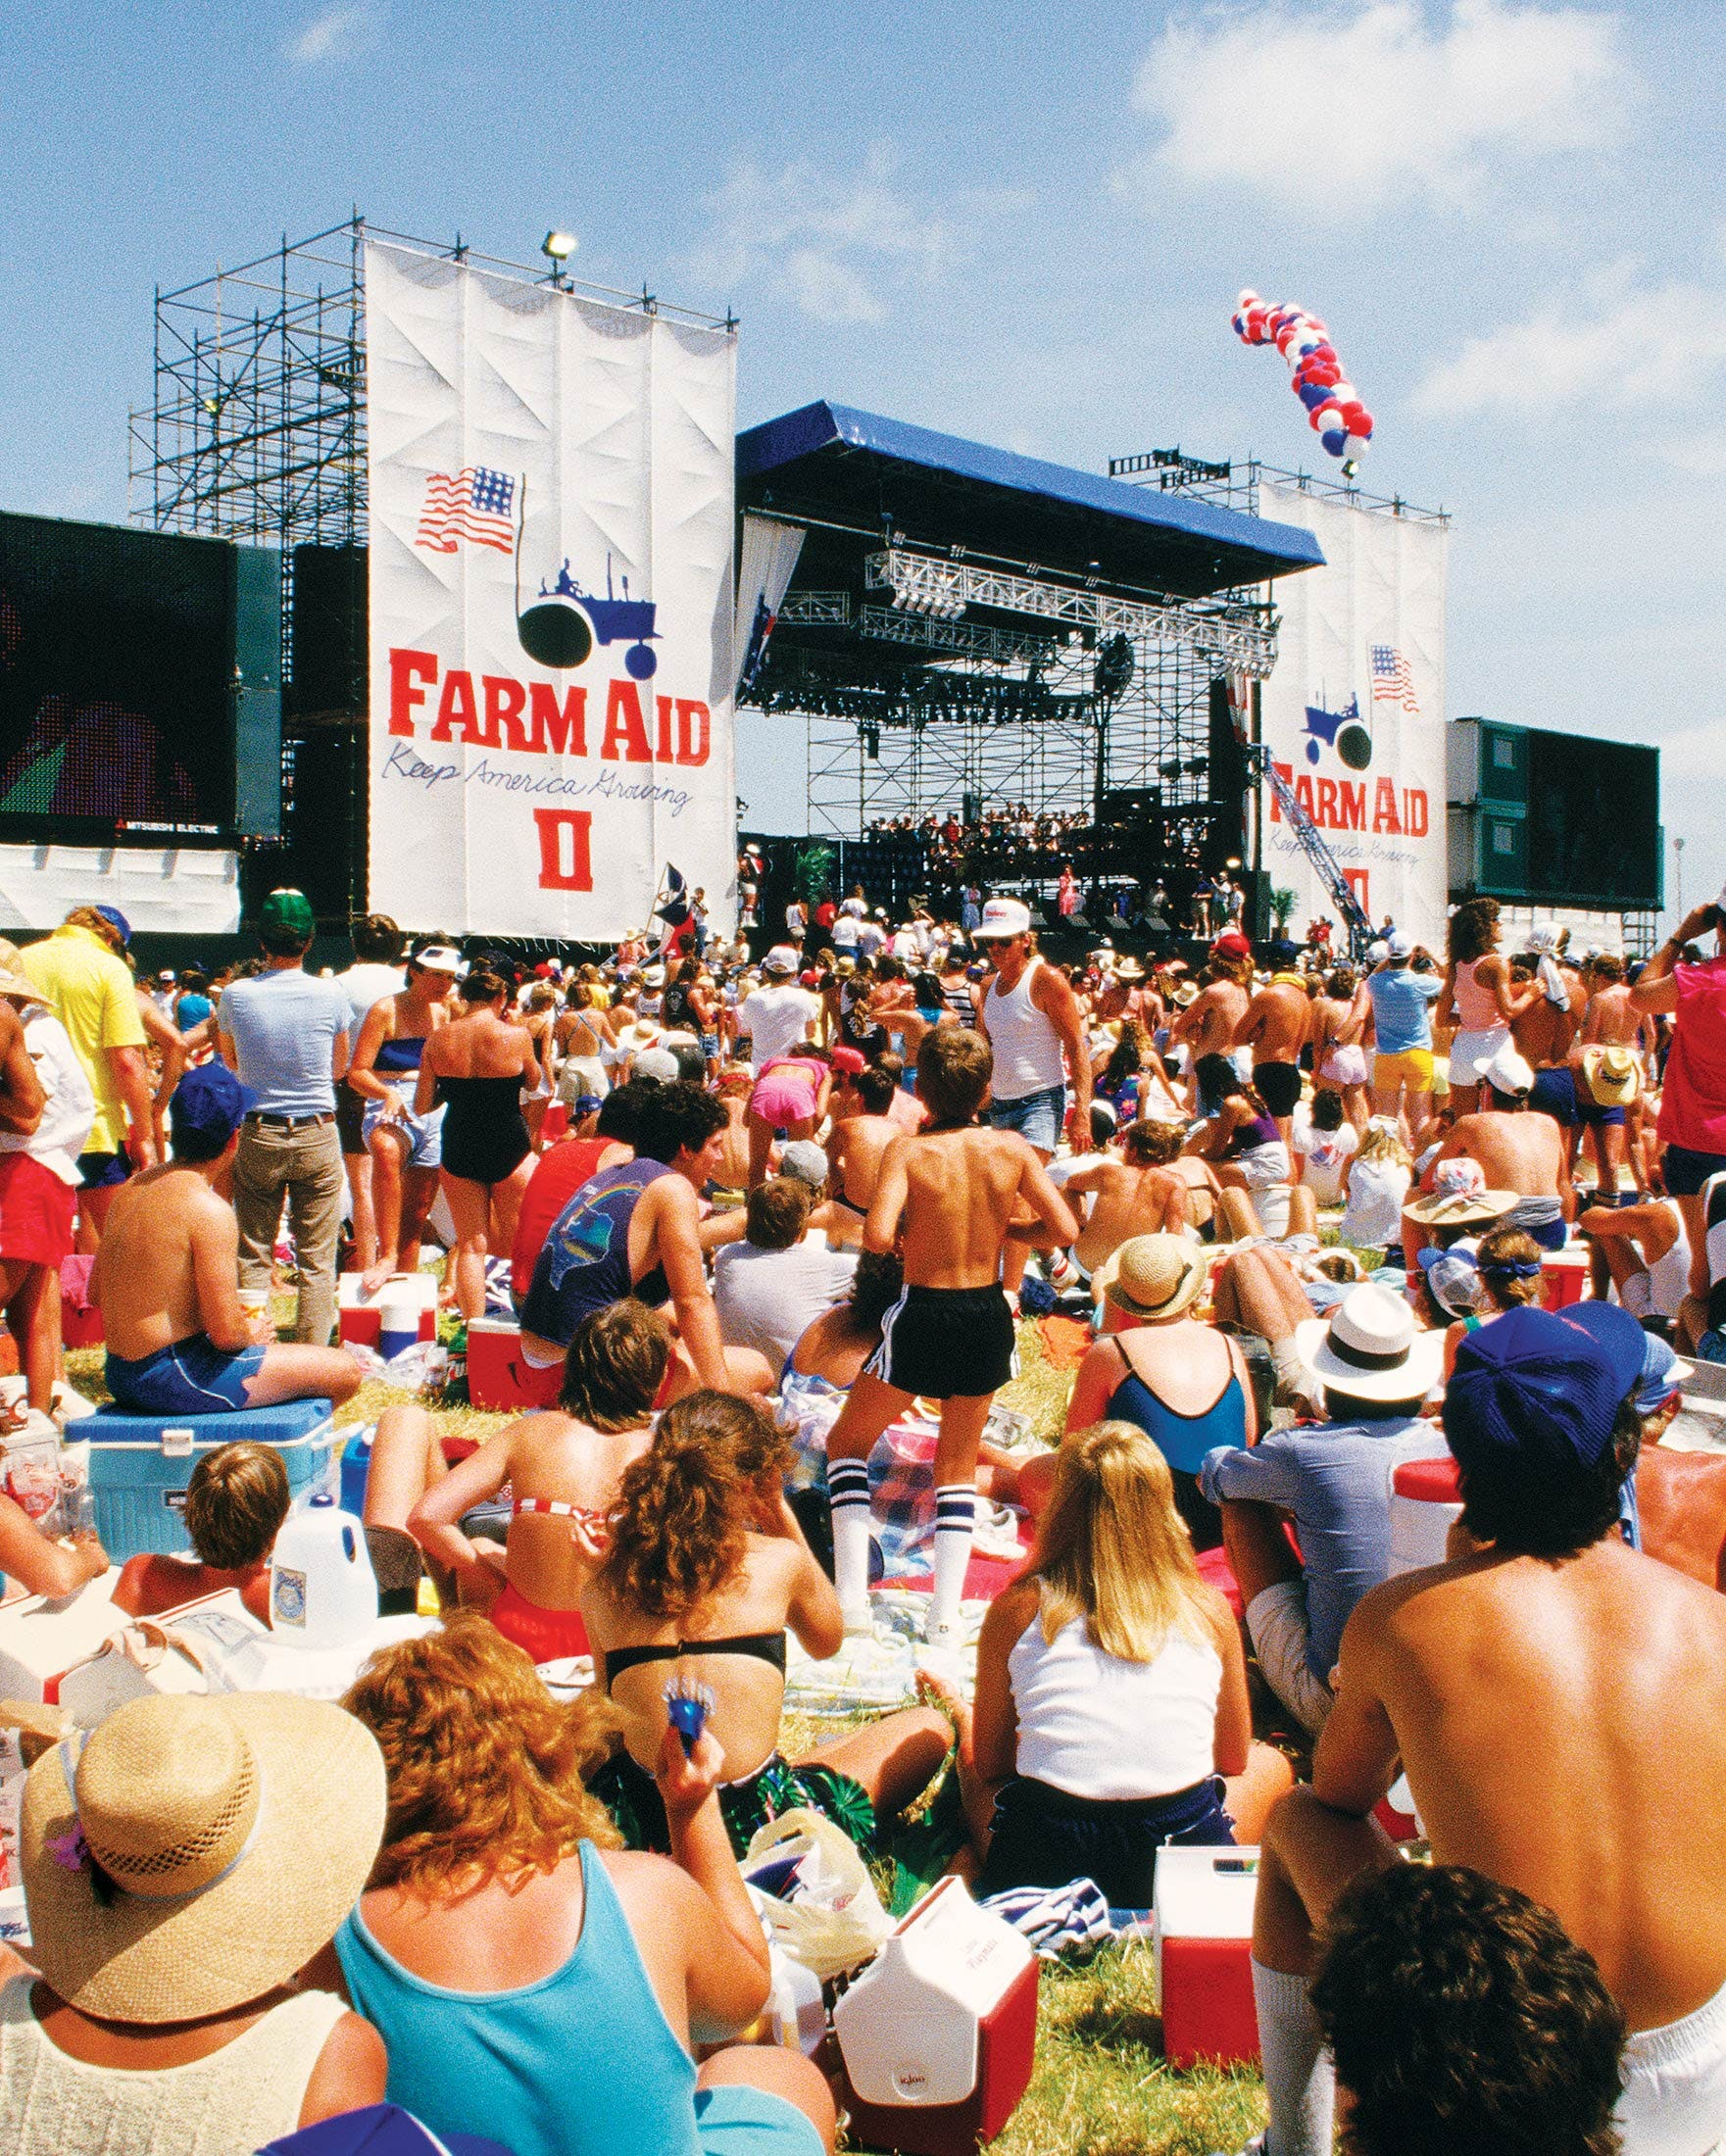 The view from the audience at Farm Aid II, in Manor, Texas, on July 4, 1986.